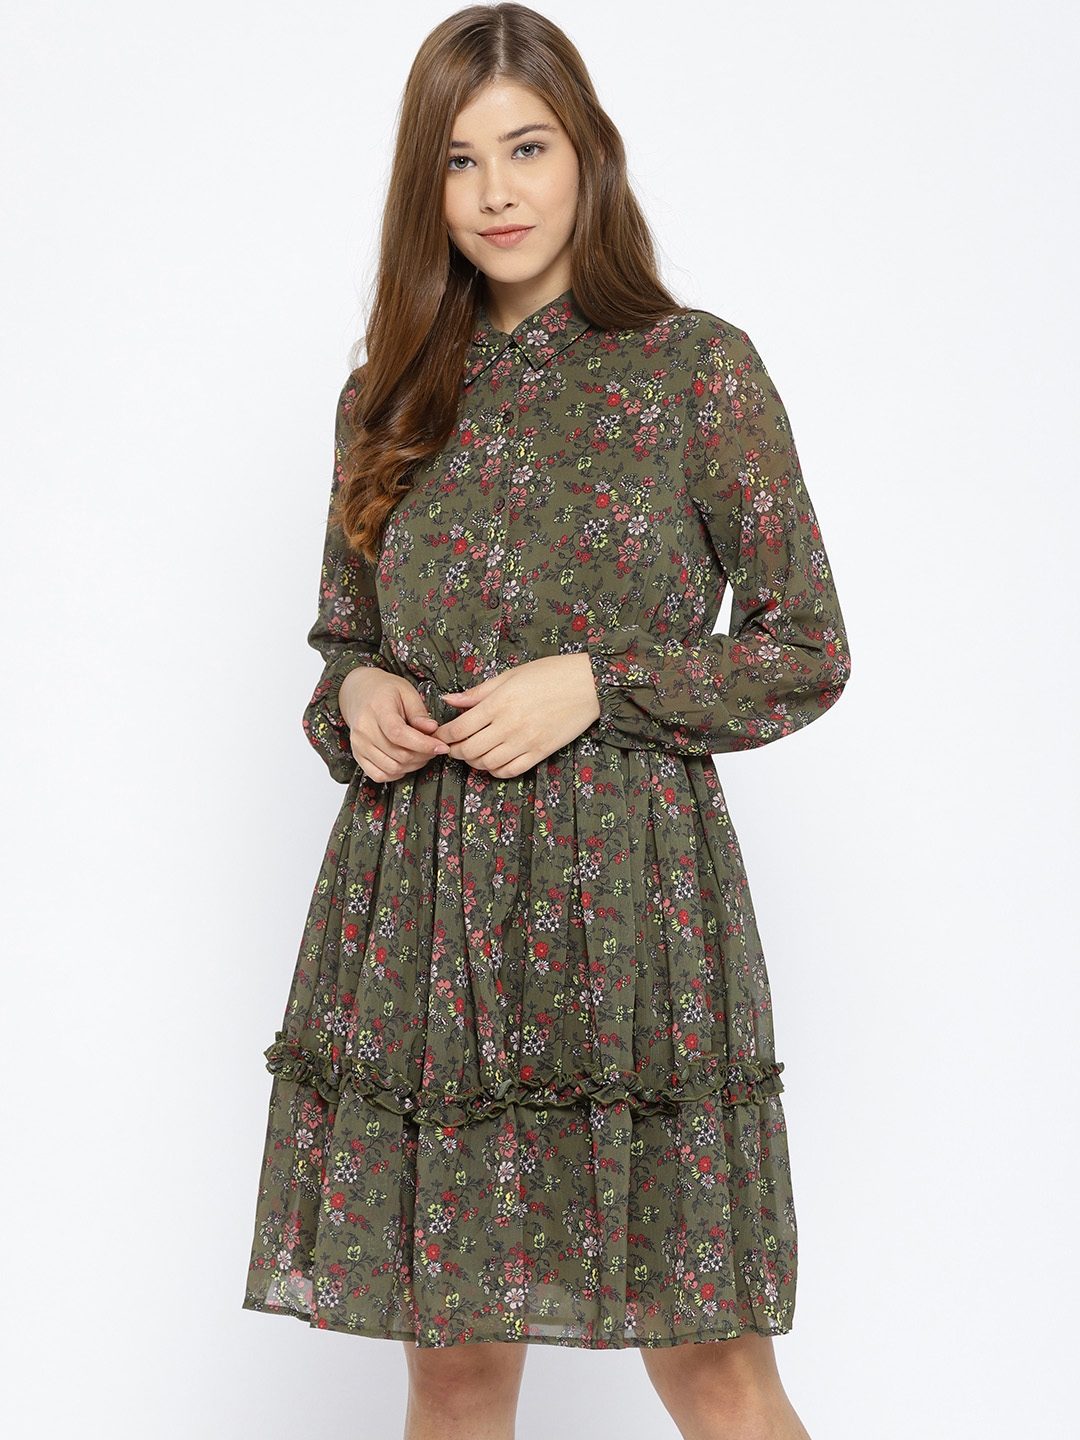 99dc5014105 Buy Vero Moda Women Green Printed Shirt Dress - Dresses for Women ...